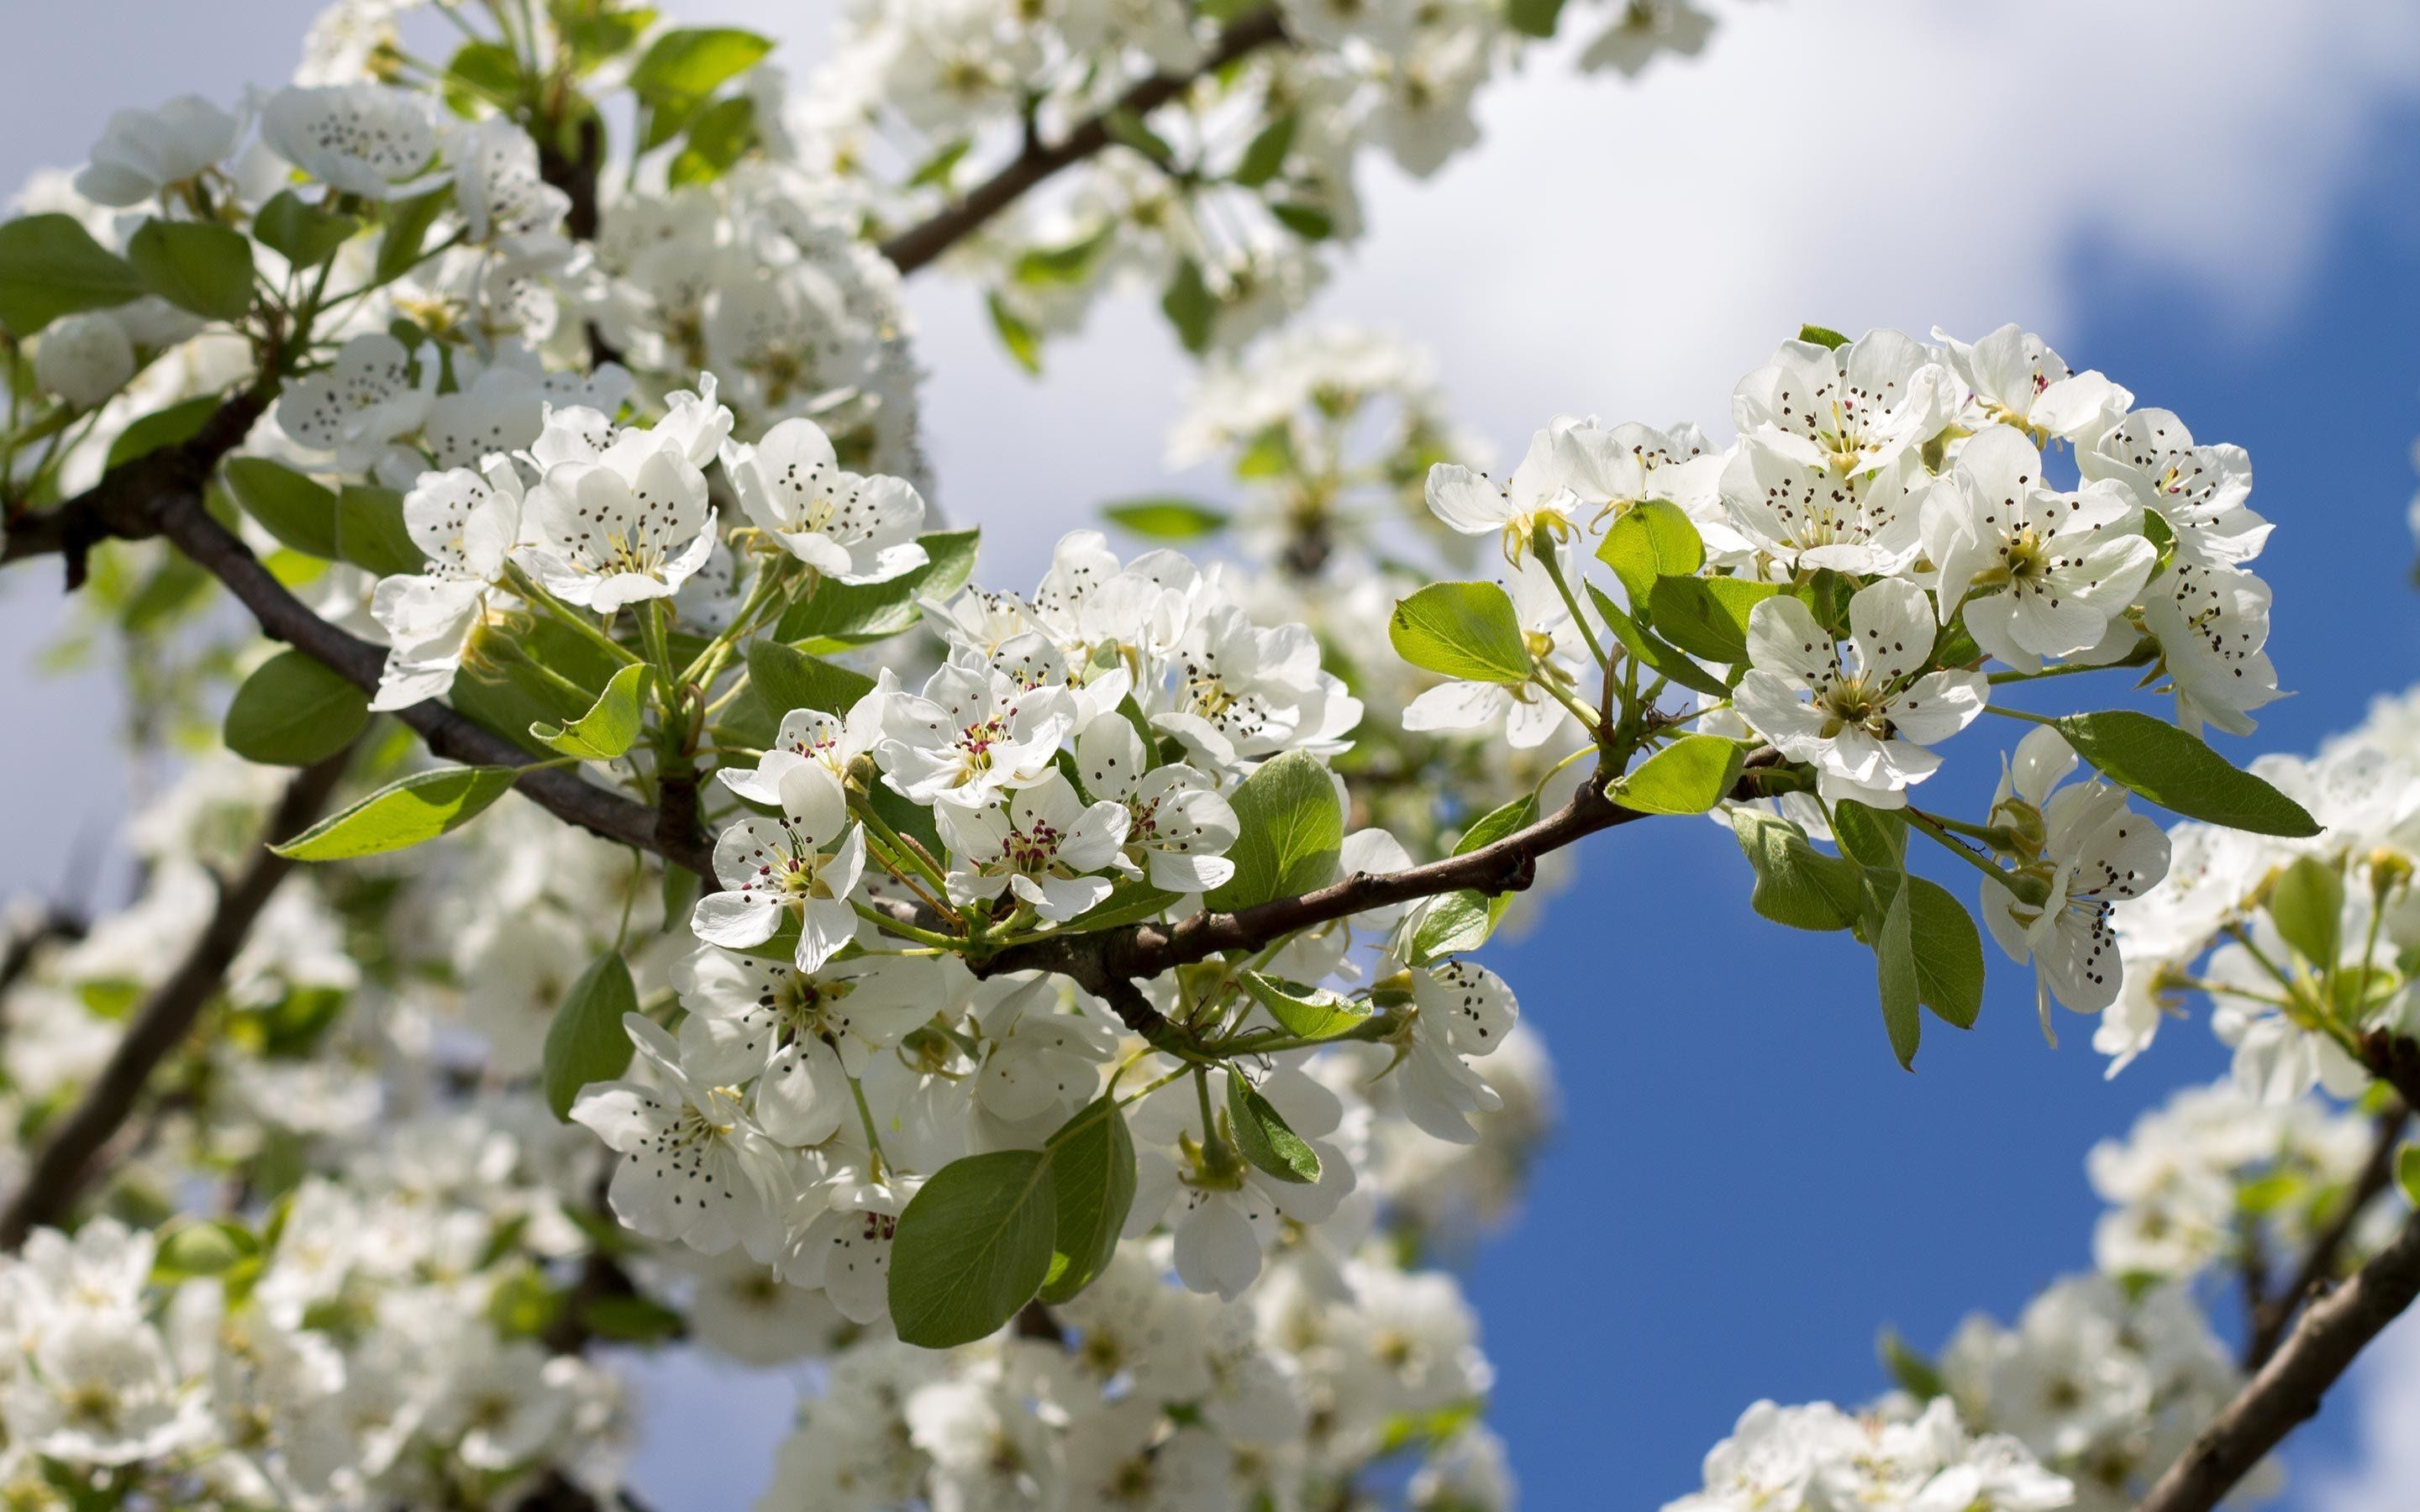 2880x1800 White pear blossoms along the branch